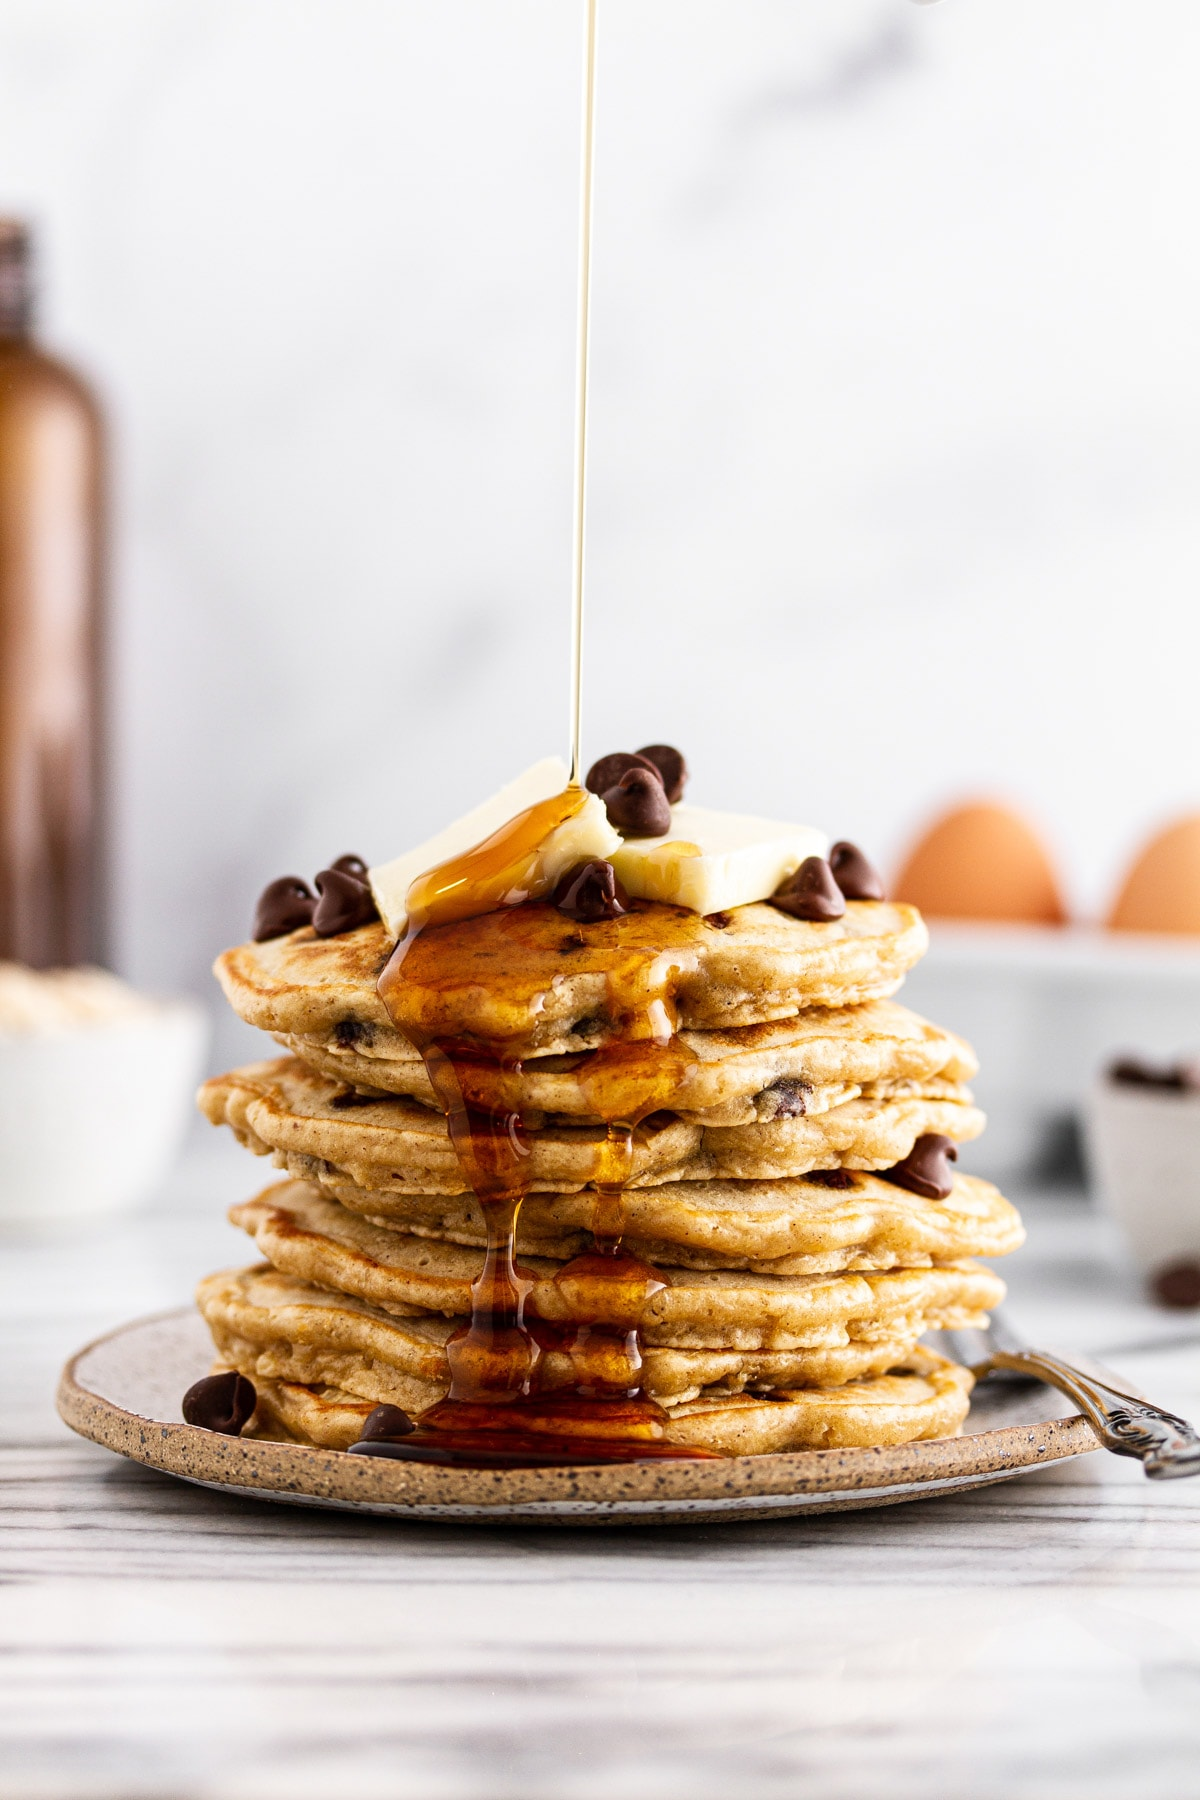 syrup pouring onto a stack of oatmeal chocolate chip pancakes